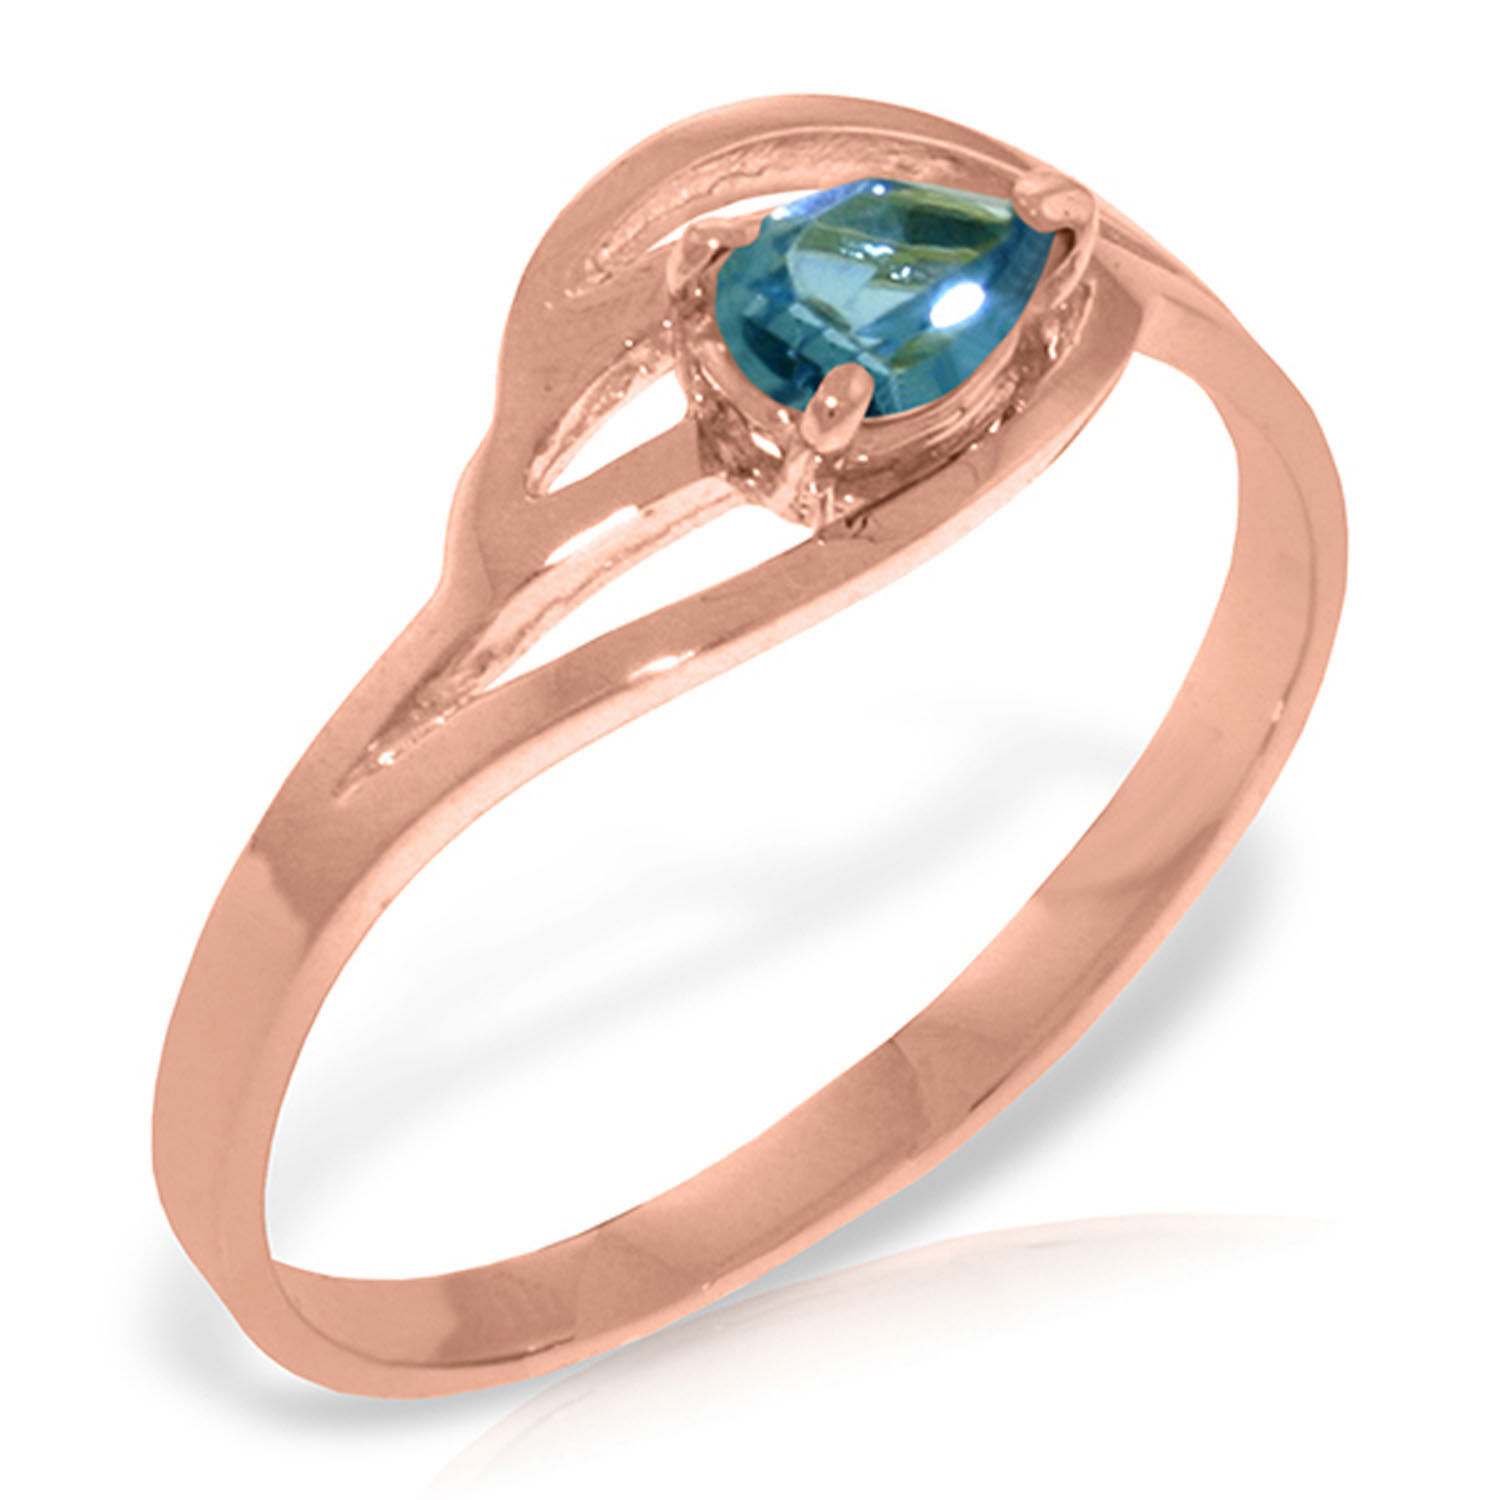 Brand New 14K Solid pink gold Ring with Natural bluee Topaz